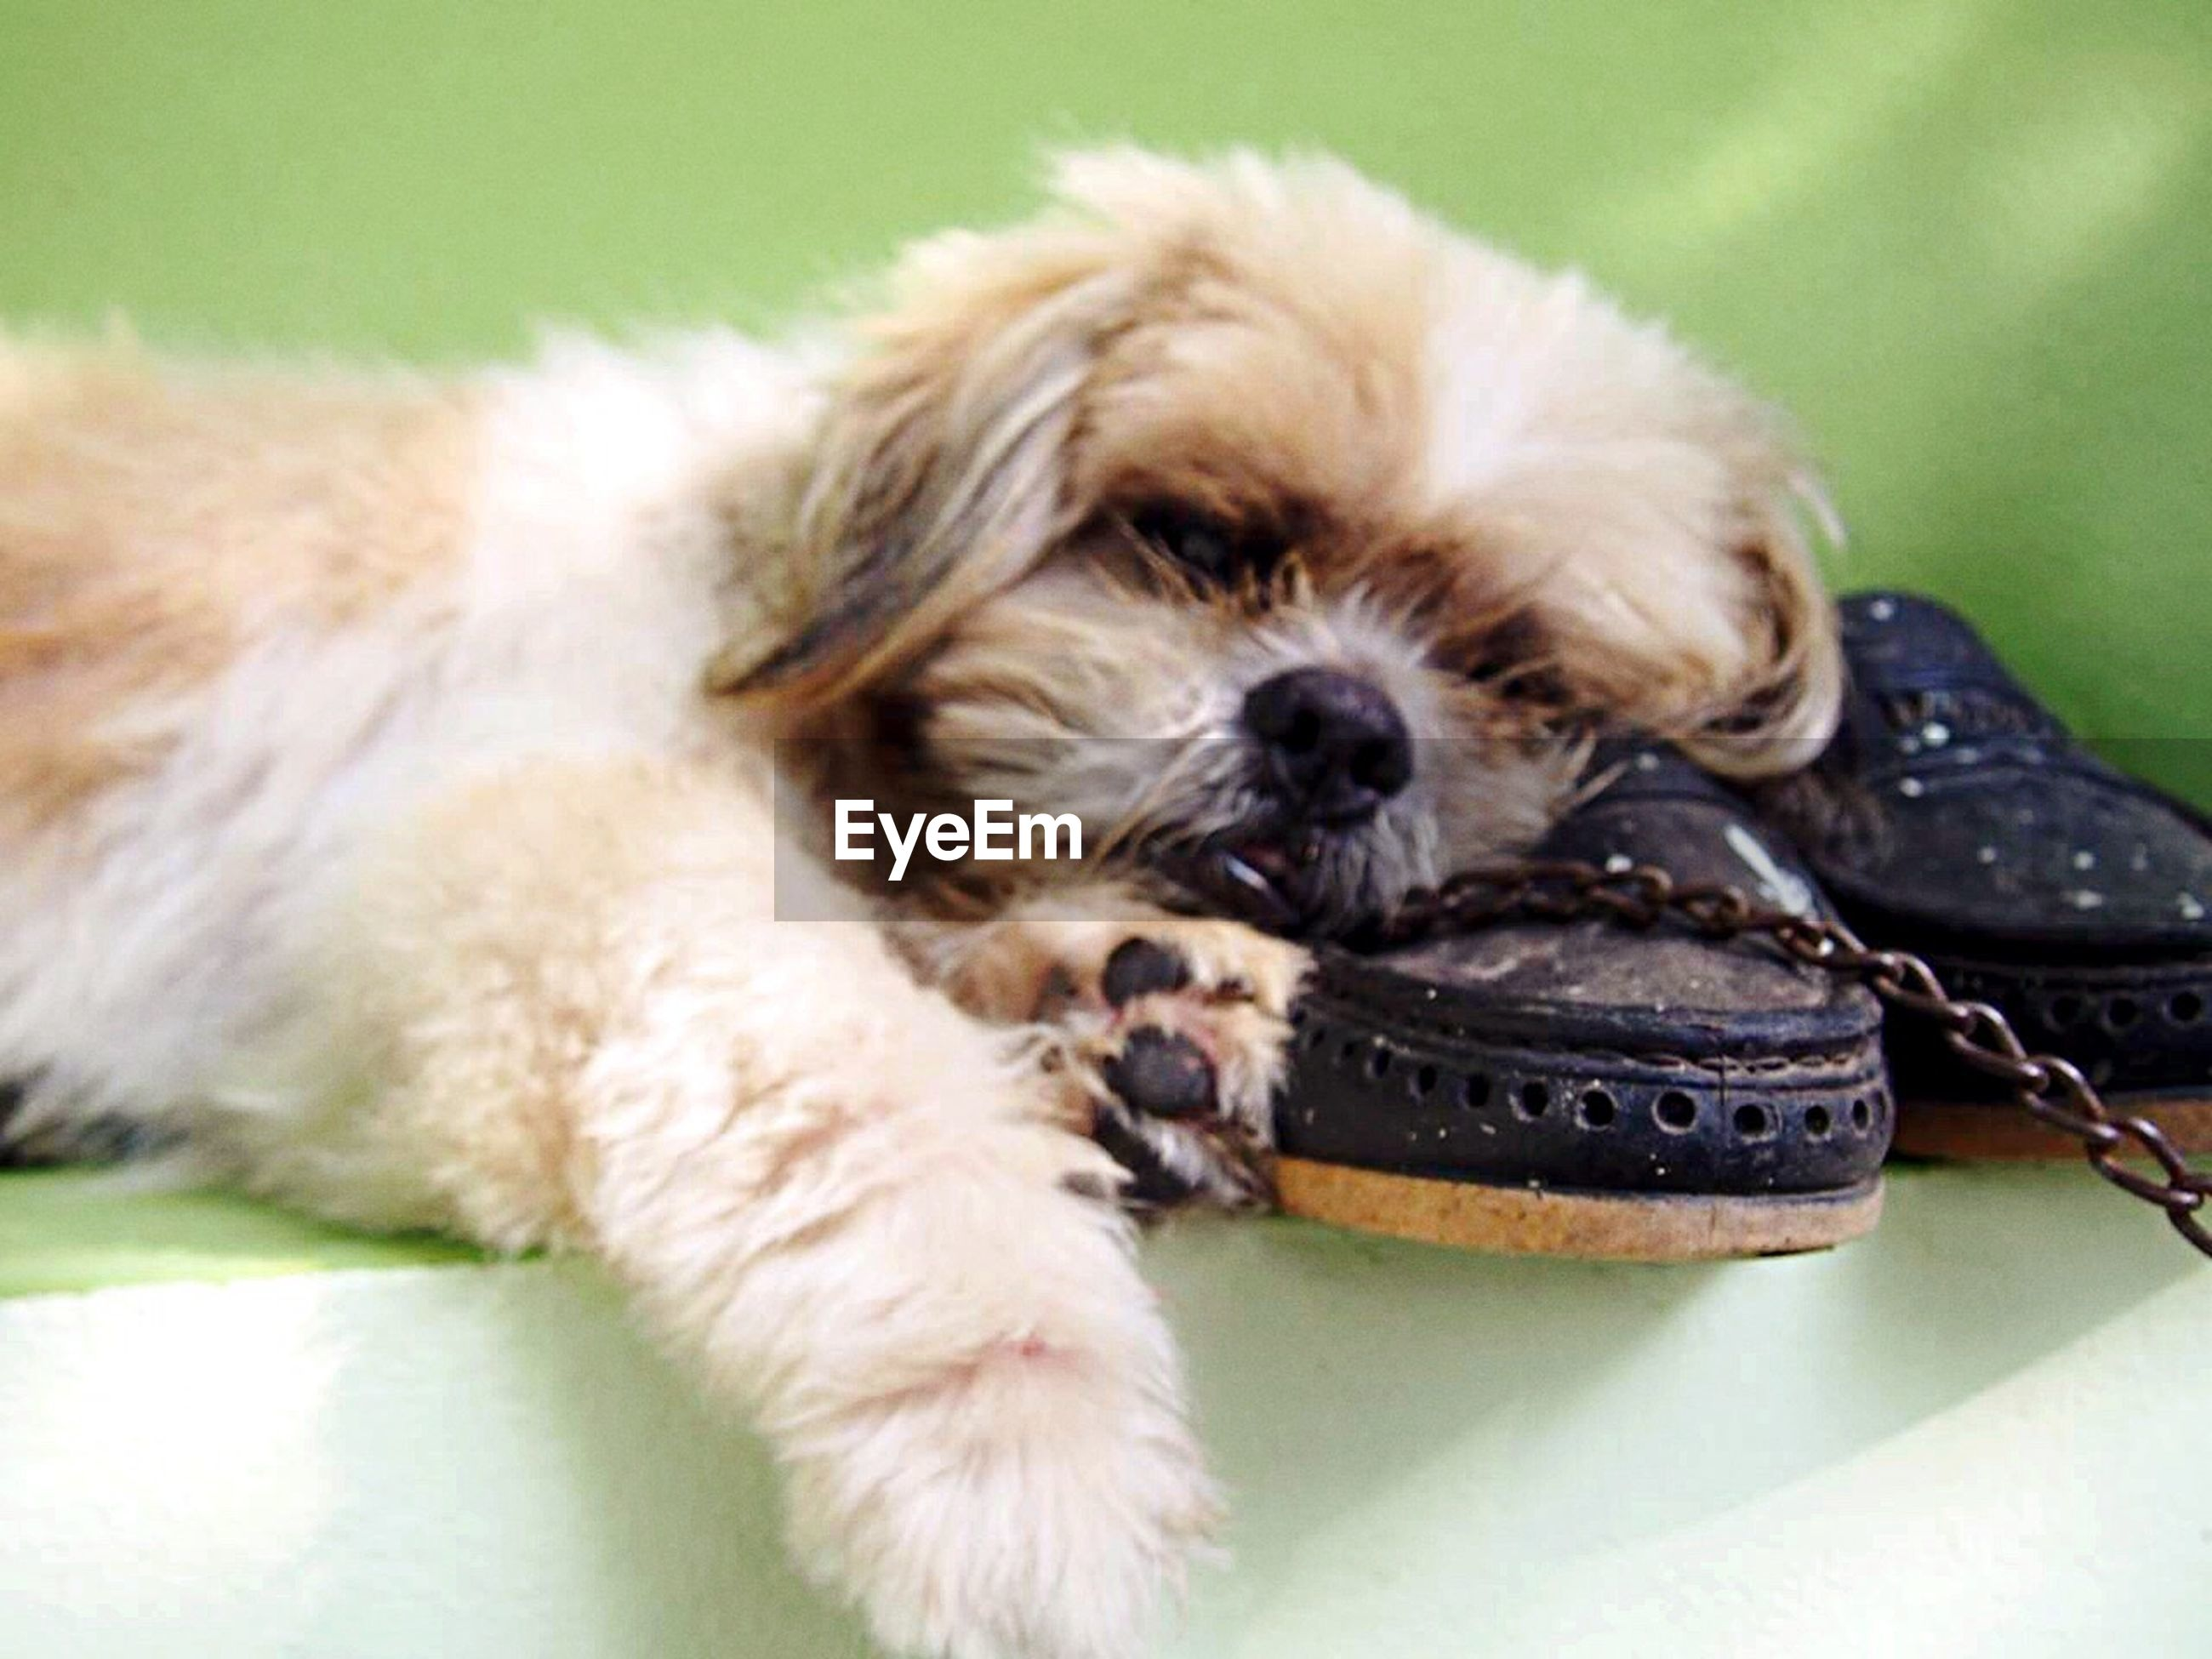 pets, dog, animal themes, domestic animals, mammal, one animal, young animal, puppy, shih tzu, cavalier king charles spaniel, lying down, indoors, no people, close-up, day